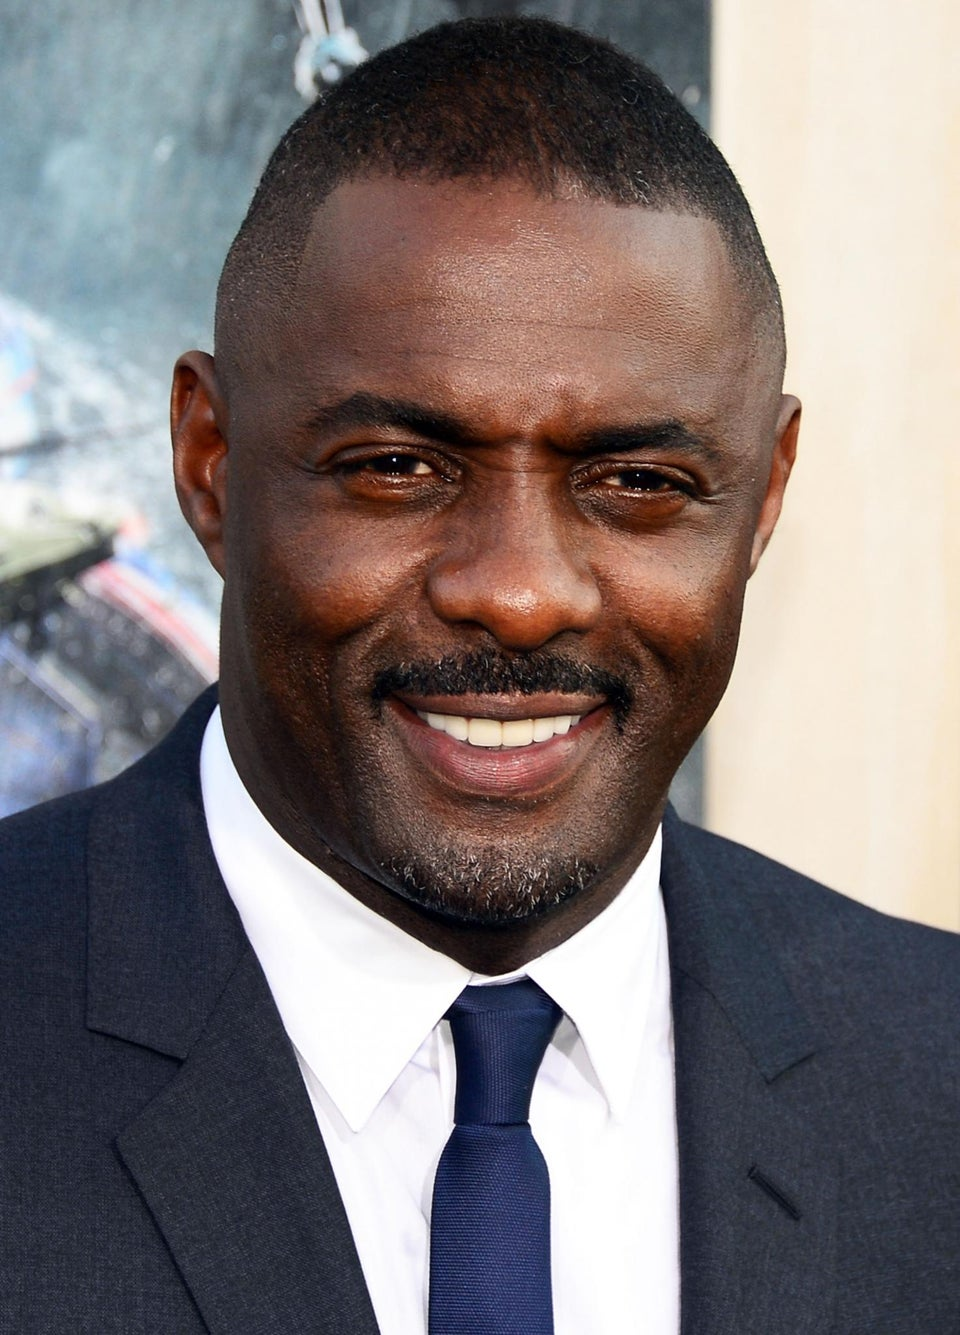 EXCLUSIVE: Idris Elba Talks 'Pacific Rim,' His No-Nonsense Characters and Playing Nelson Mandela